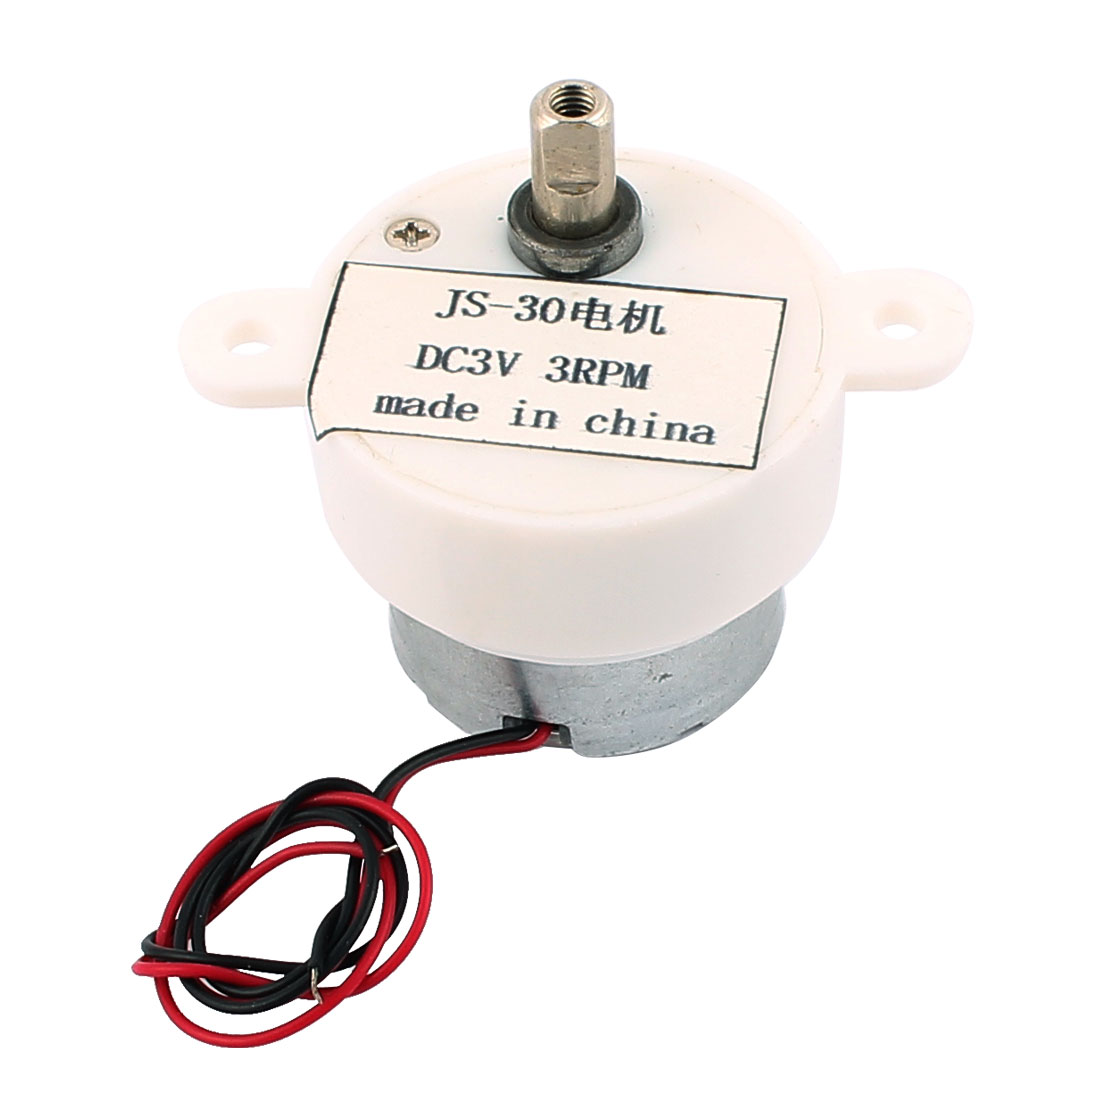 JS-30 DC 3V 3R/Min 2 Wires Connecting Micro Motor for Air Condition Water Heater